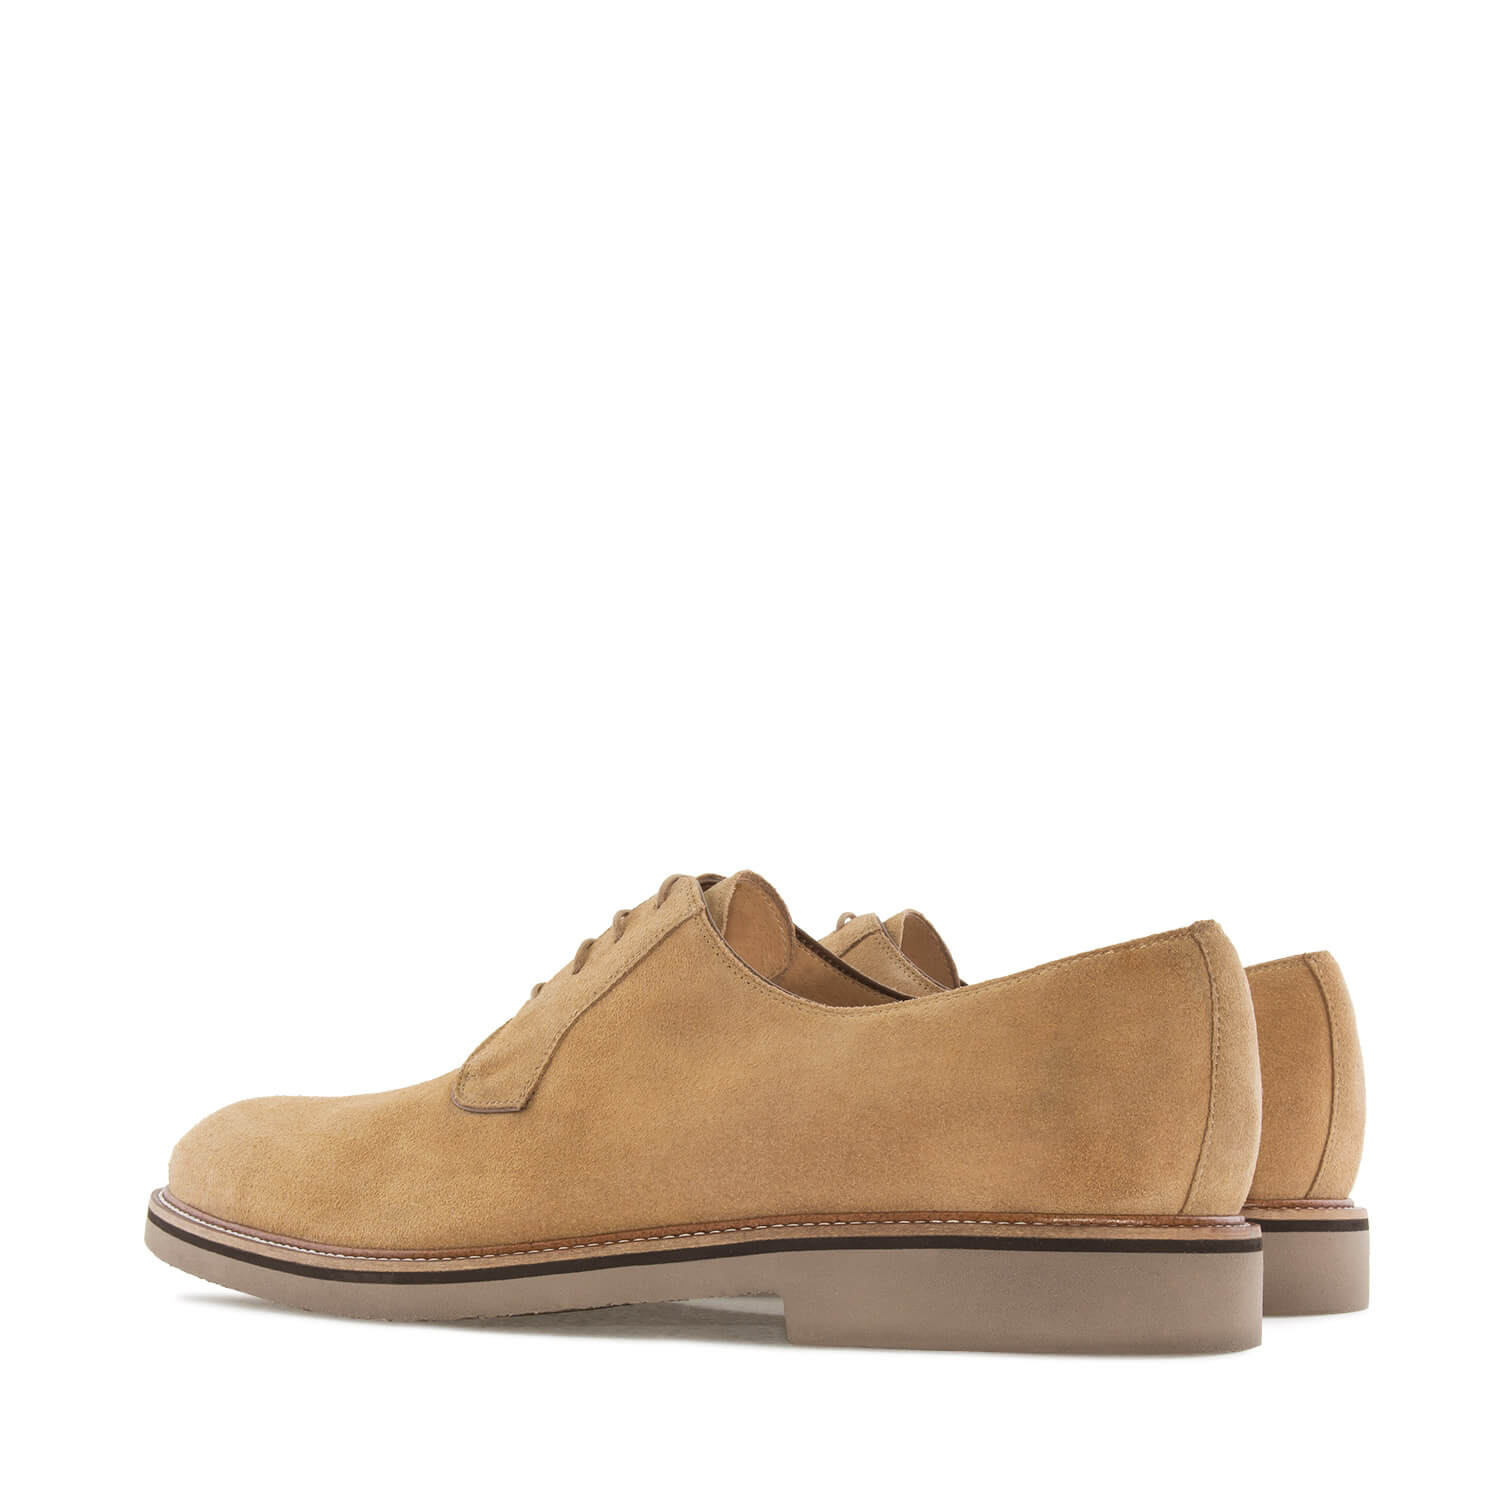 Zapatos Oxford Serraje Camel